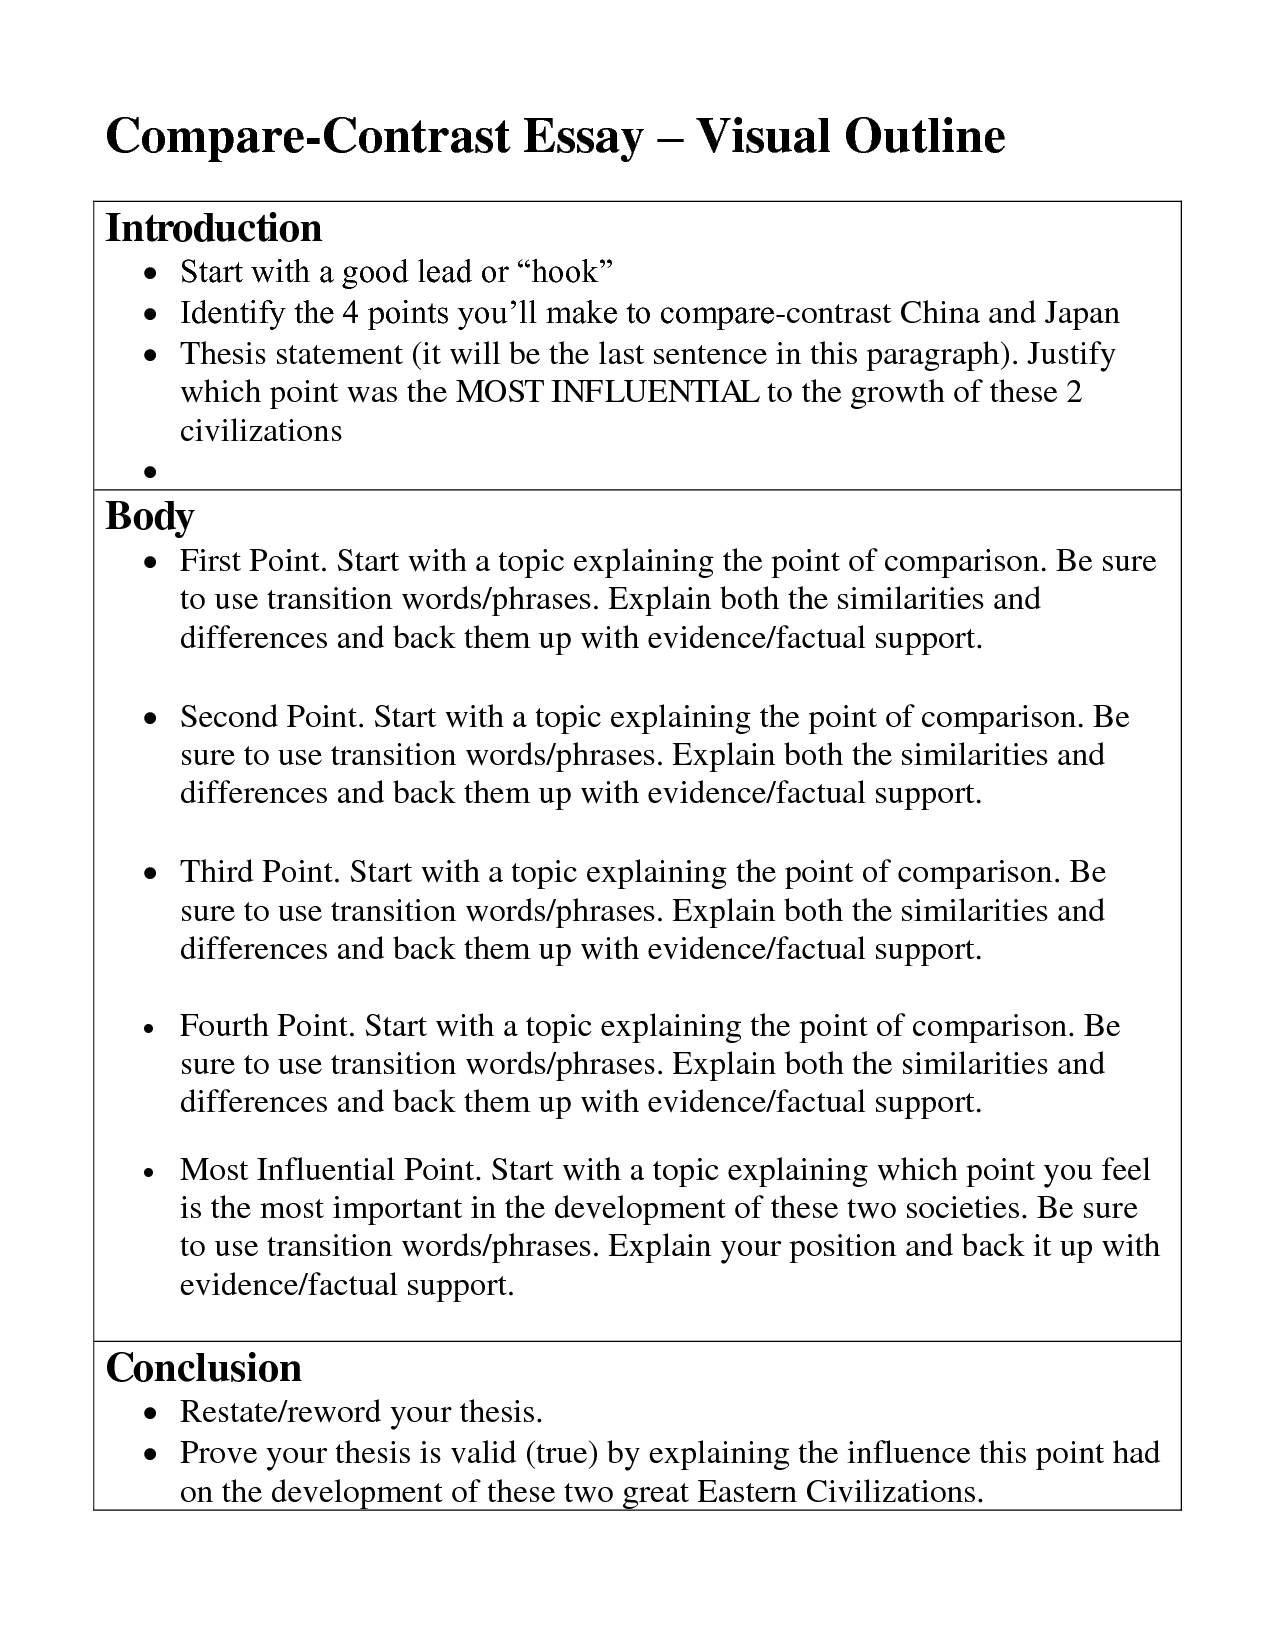 007 Compare And Contrast Essay Format Rare Writing 3rd Grade Sample High School Pdf Full